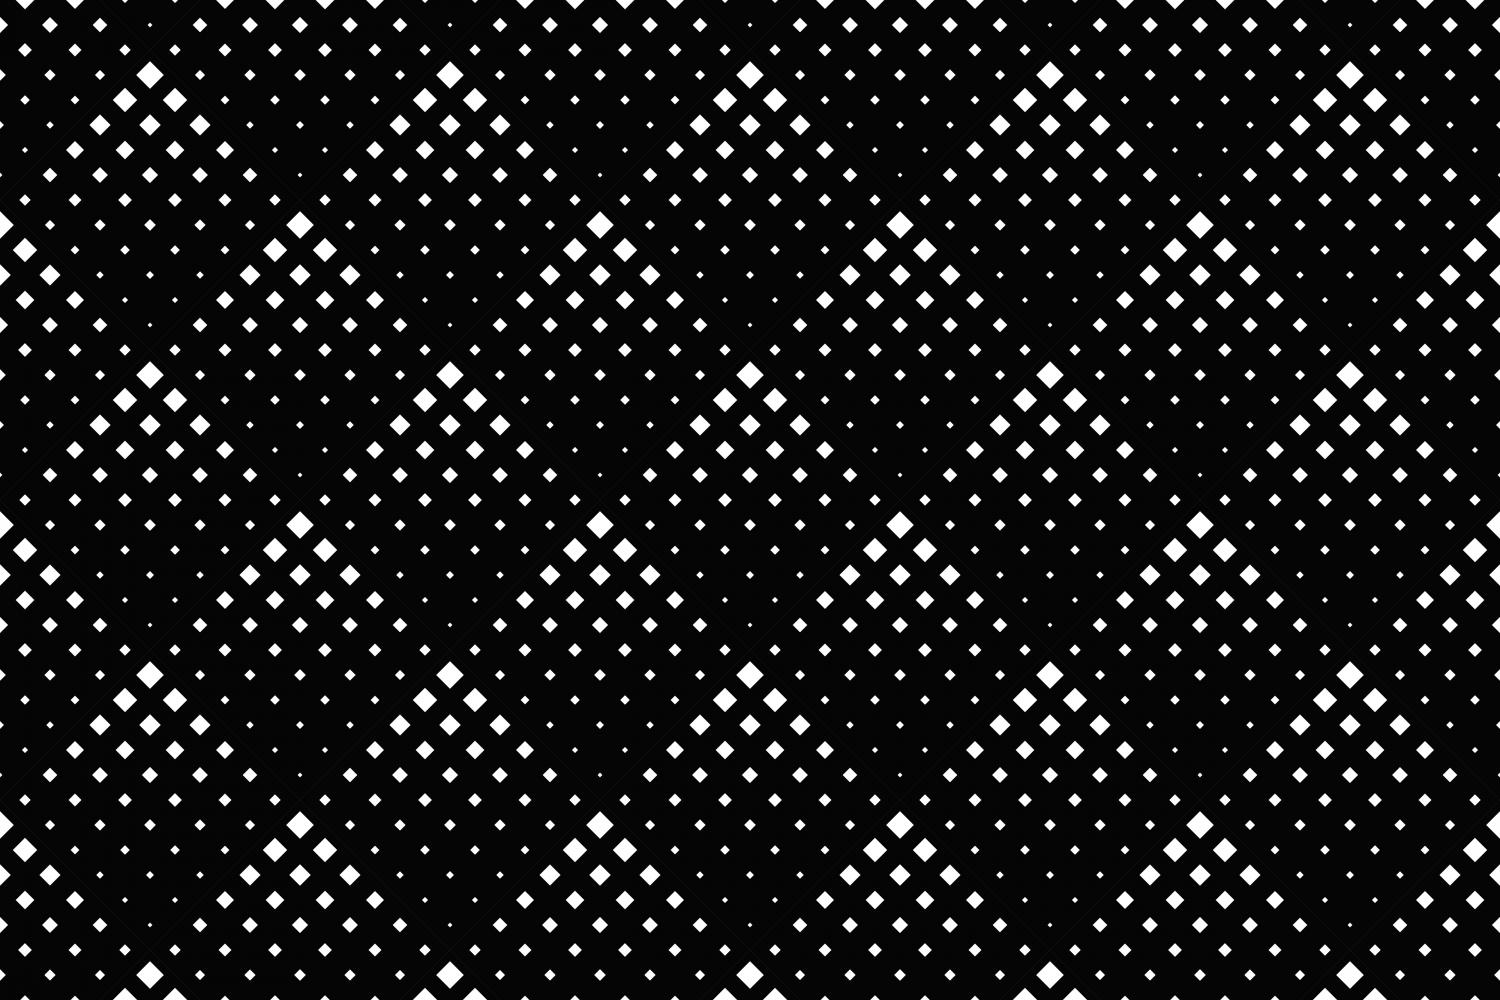 24 Seamless Square Patterns example image 8